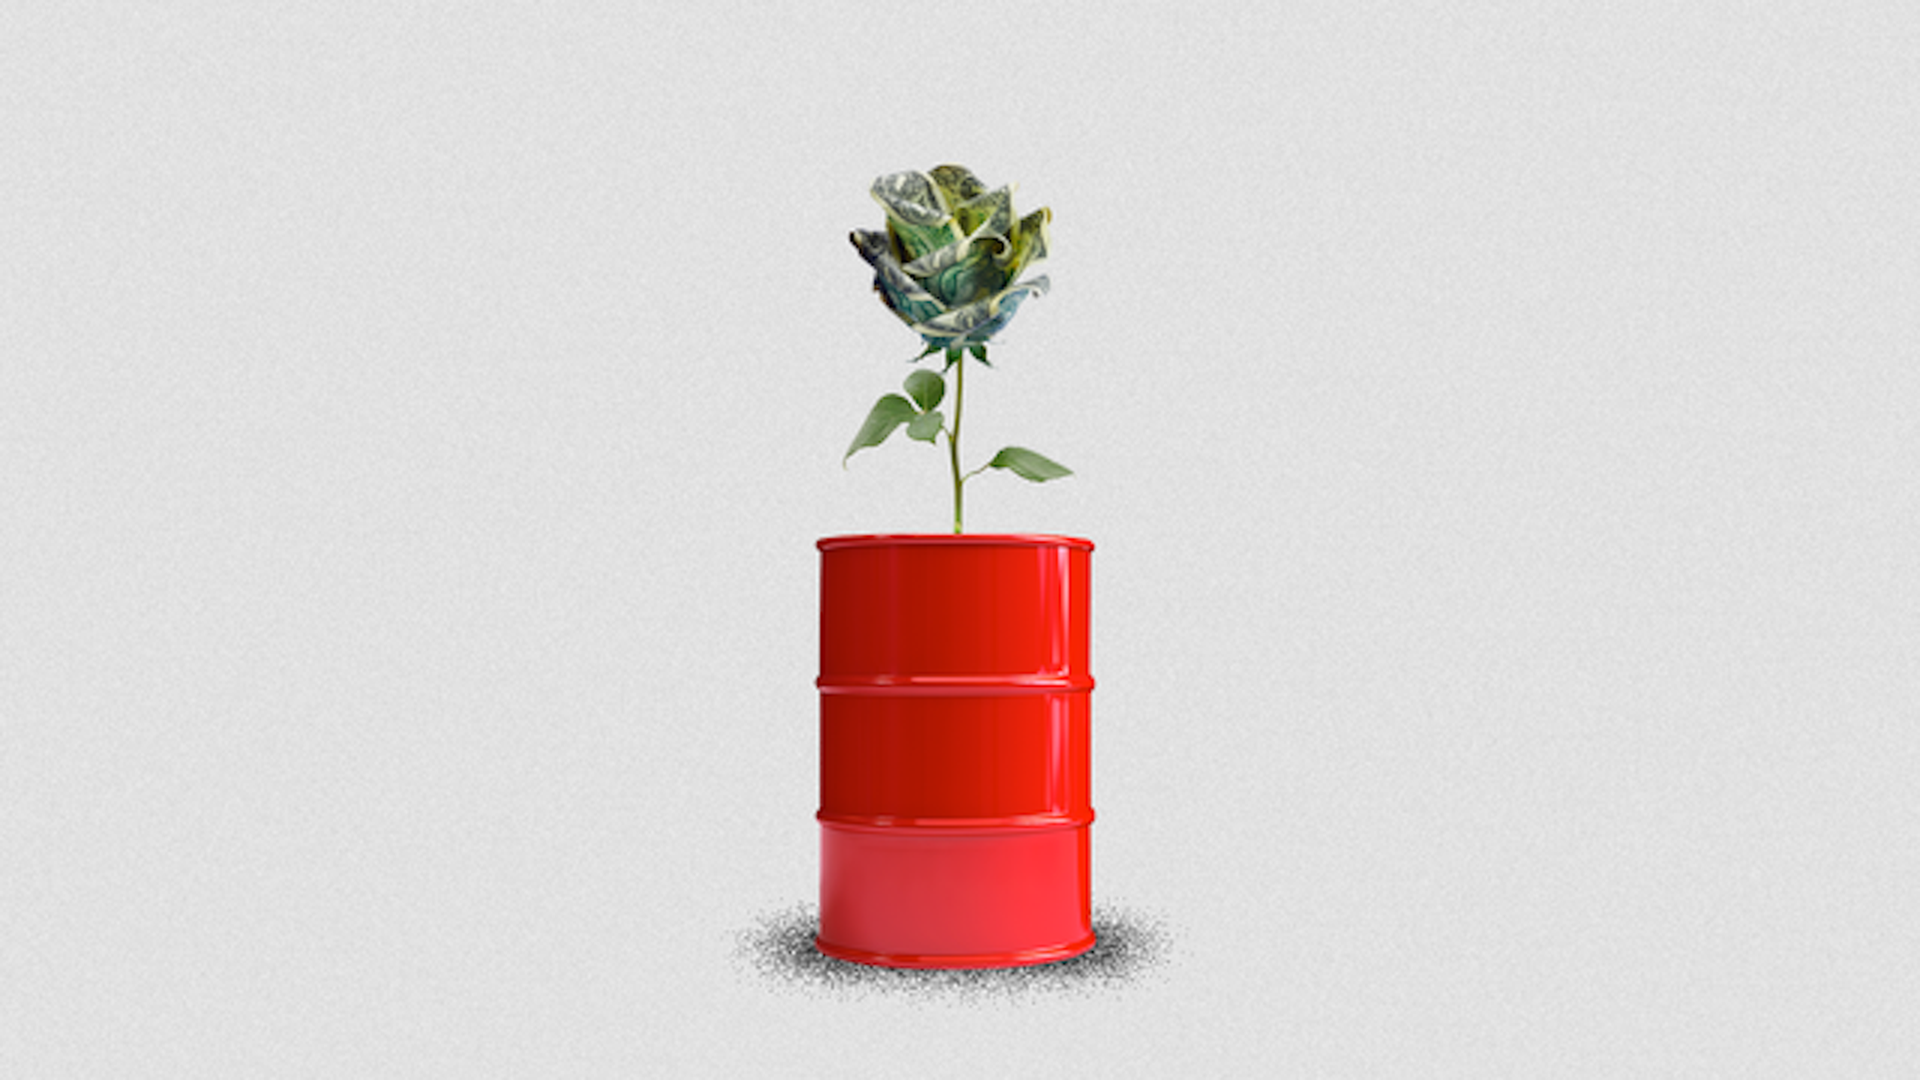 Illustration of a money plant sprouting out an oil container